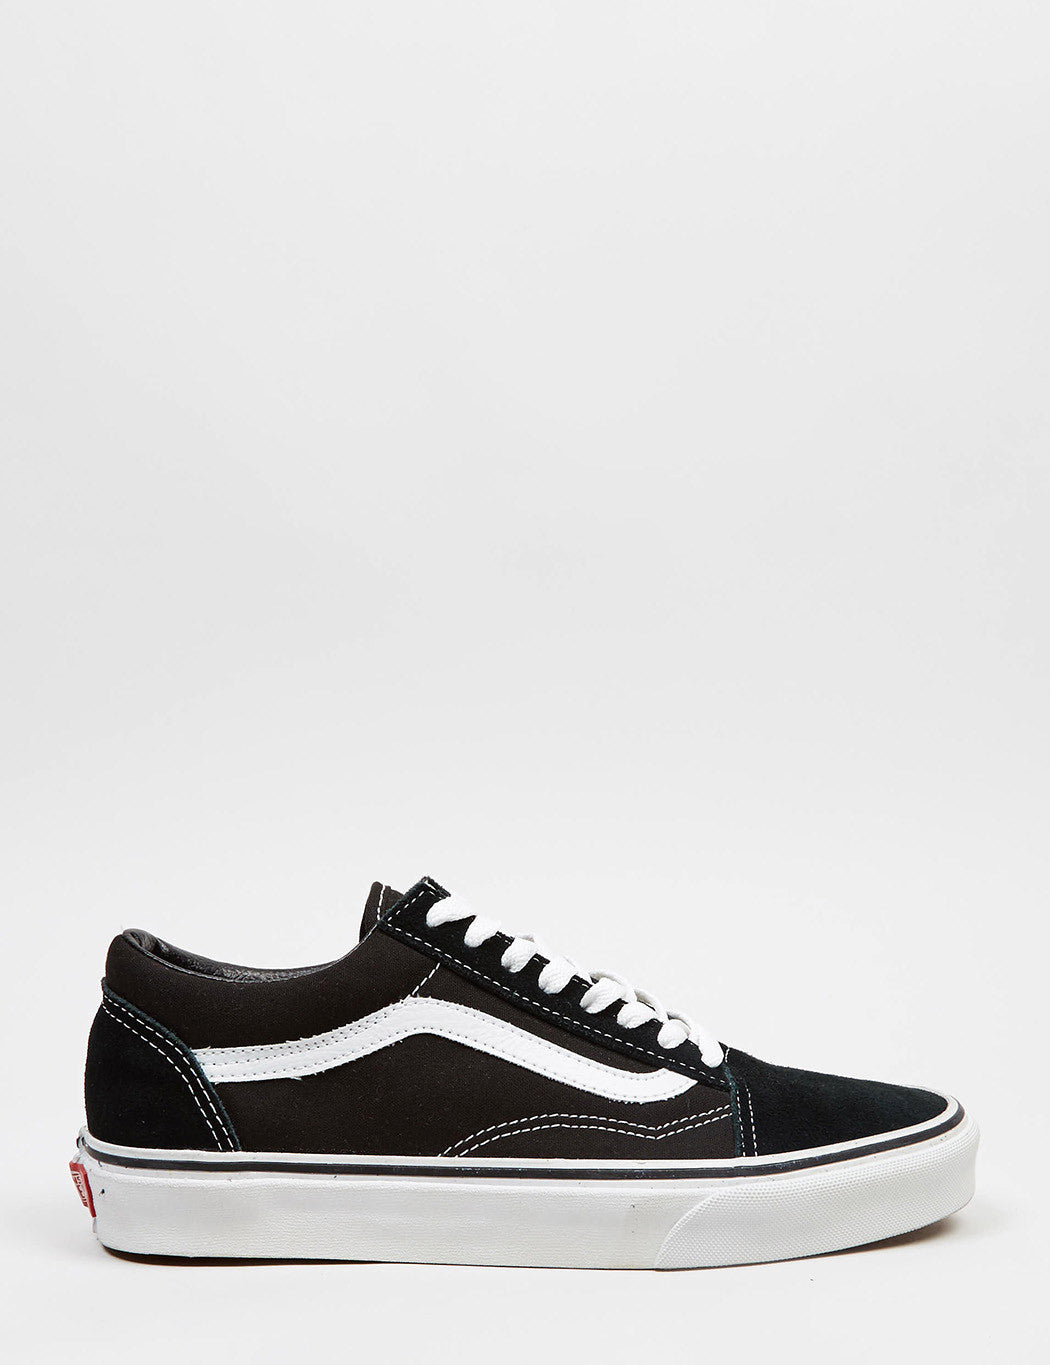 Vans Old Skool Trainers VD3HY28 - Black